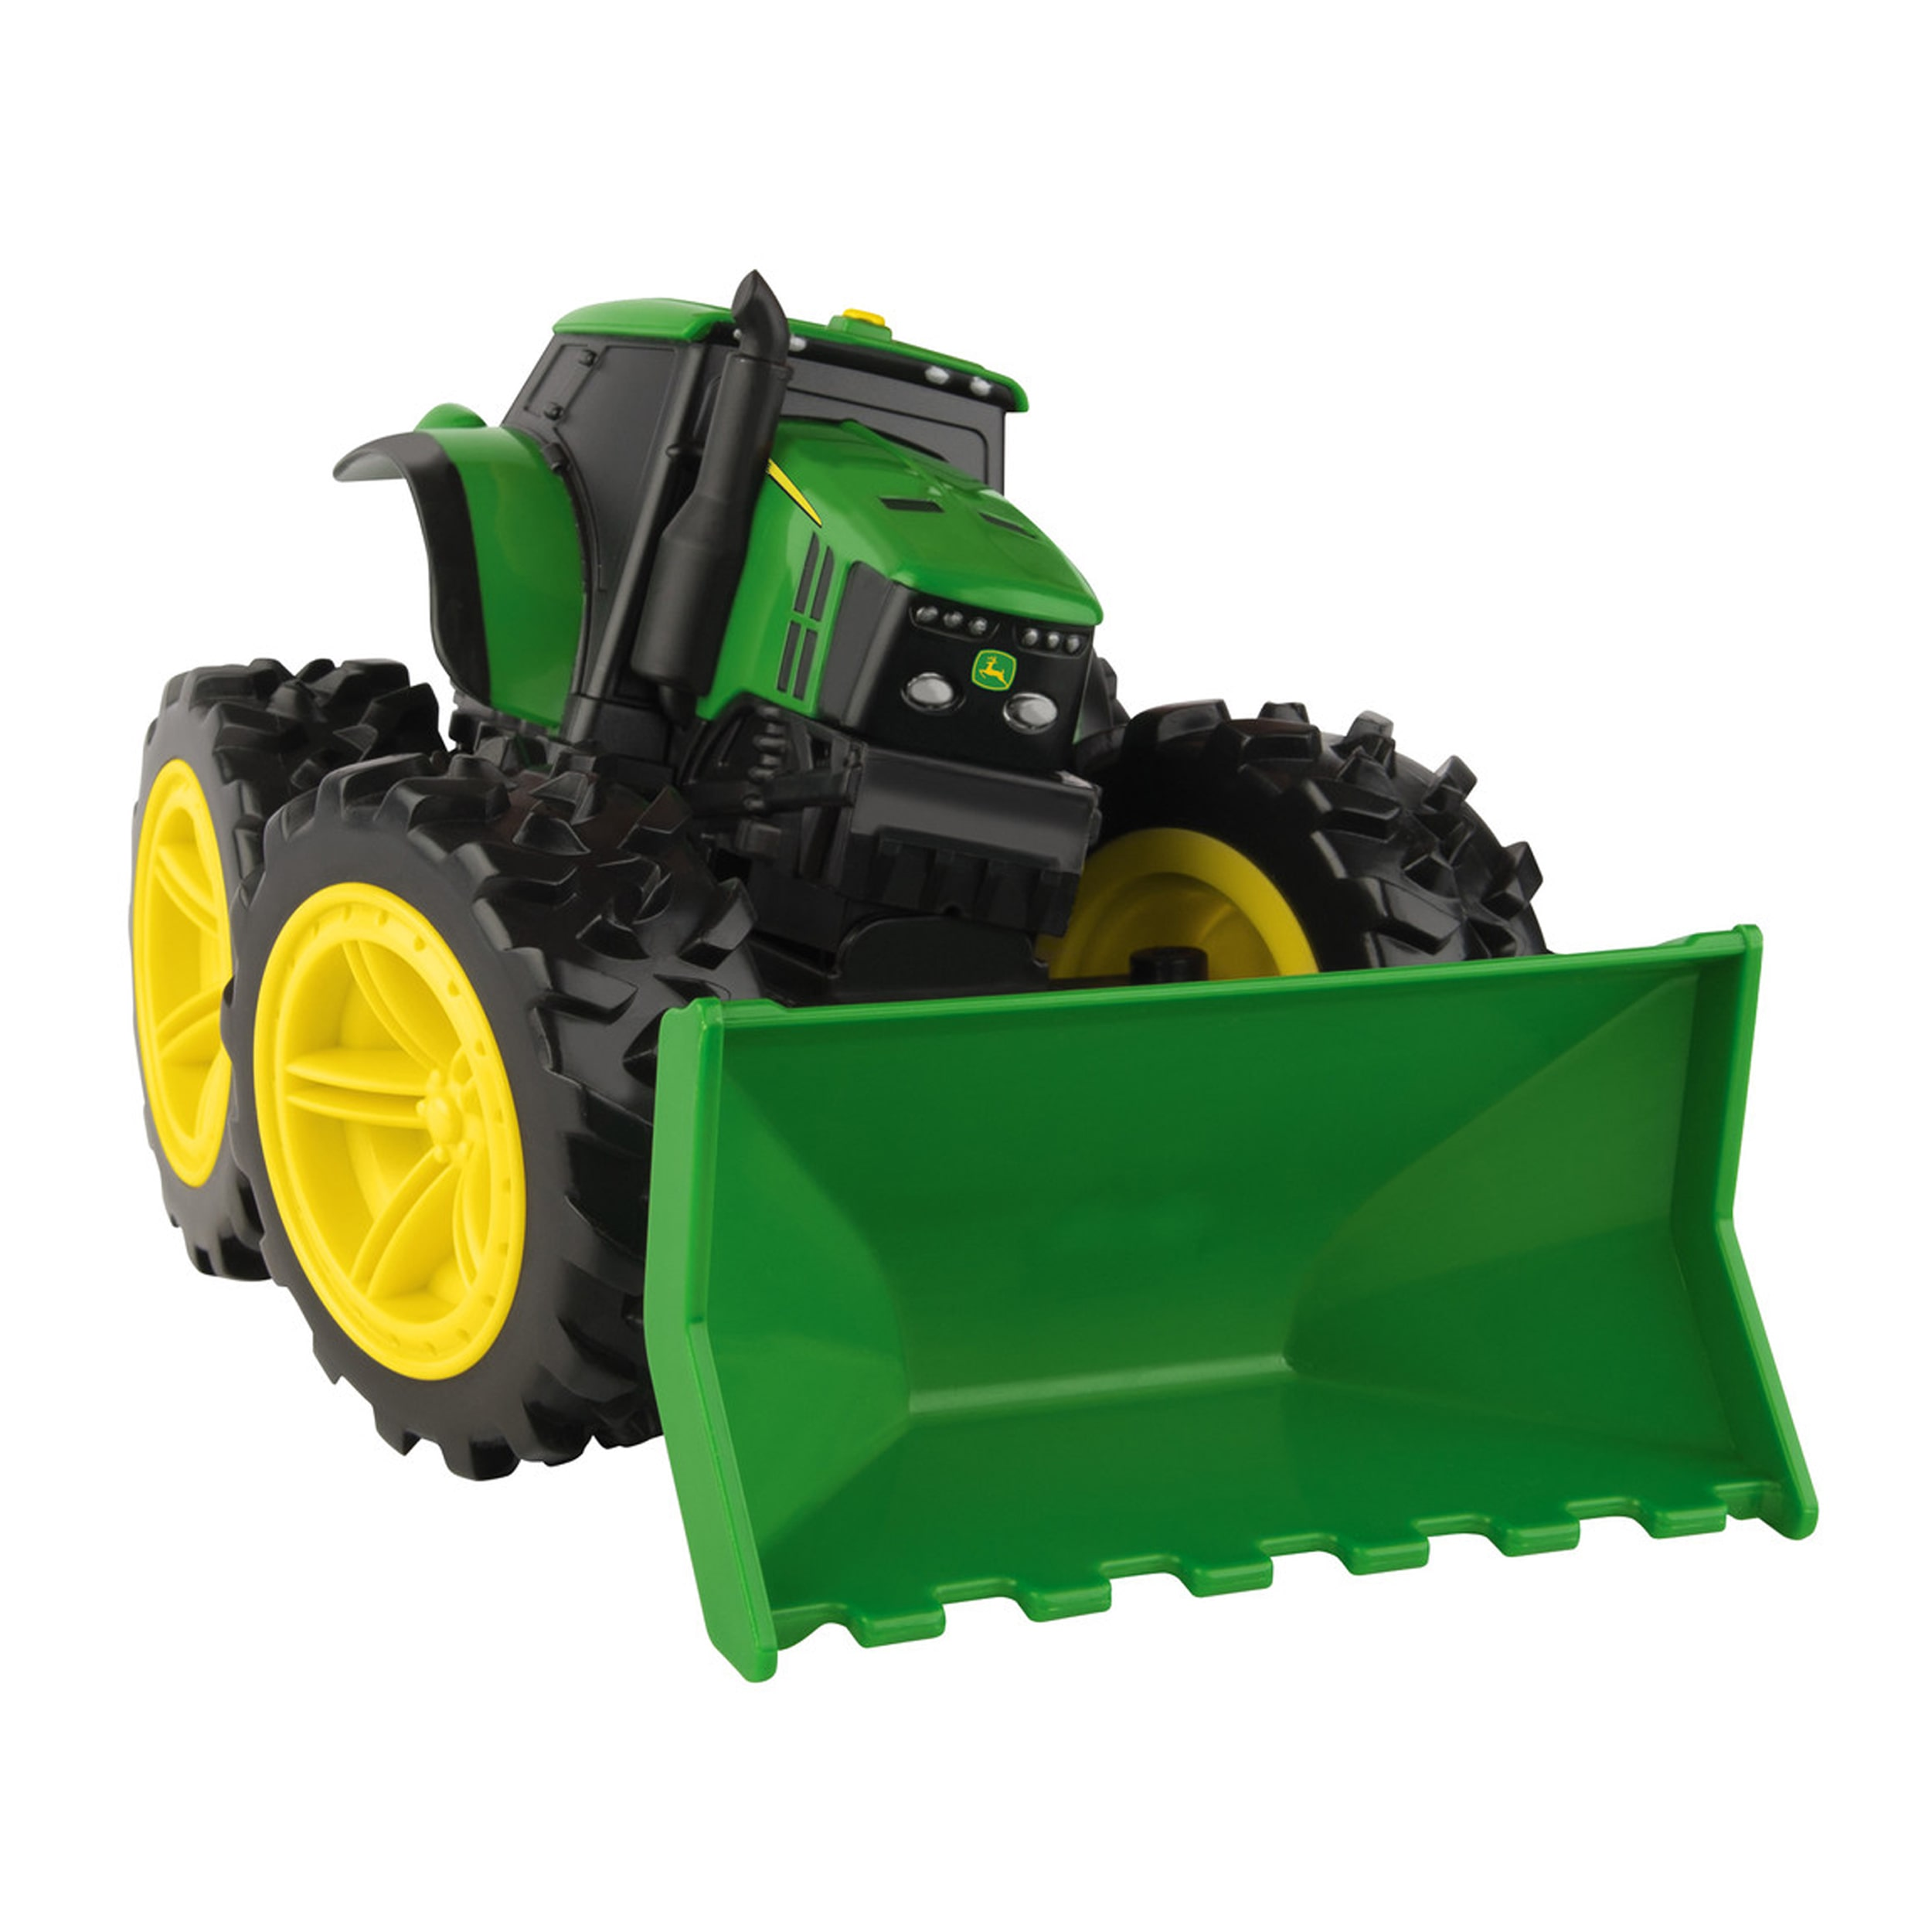 TOMY Monster Treads Cab Control Tractor by Overstock